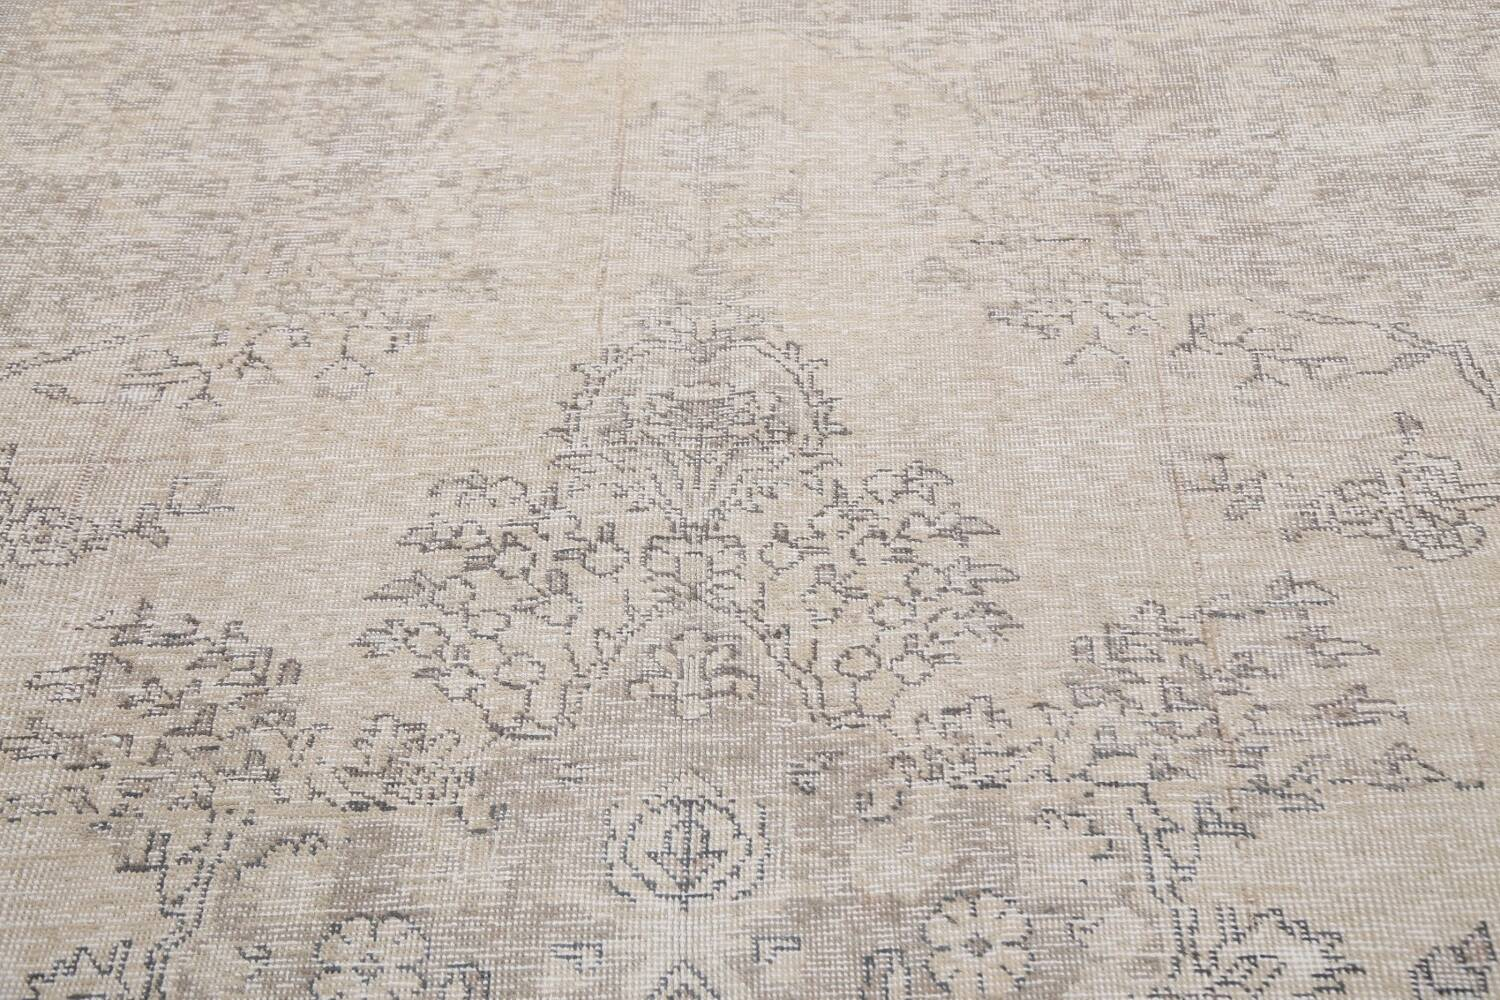 Muted Distressed Floral Tabriz Persian Area Rug 6x8 image 11